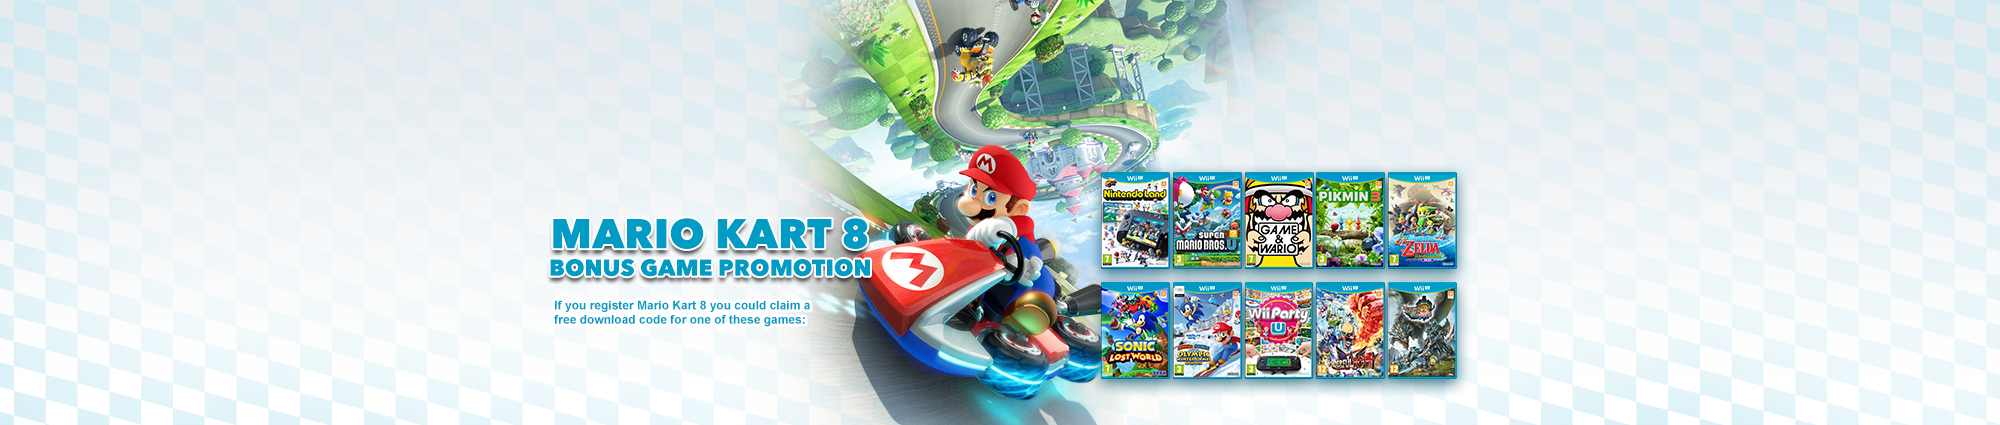 Mario Kart 8 Bonus Game Promotion